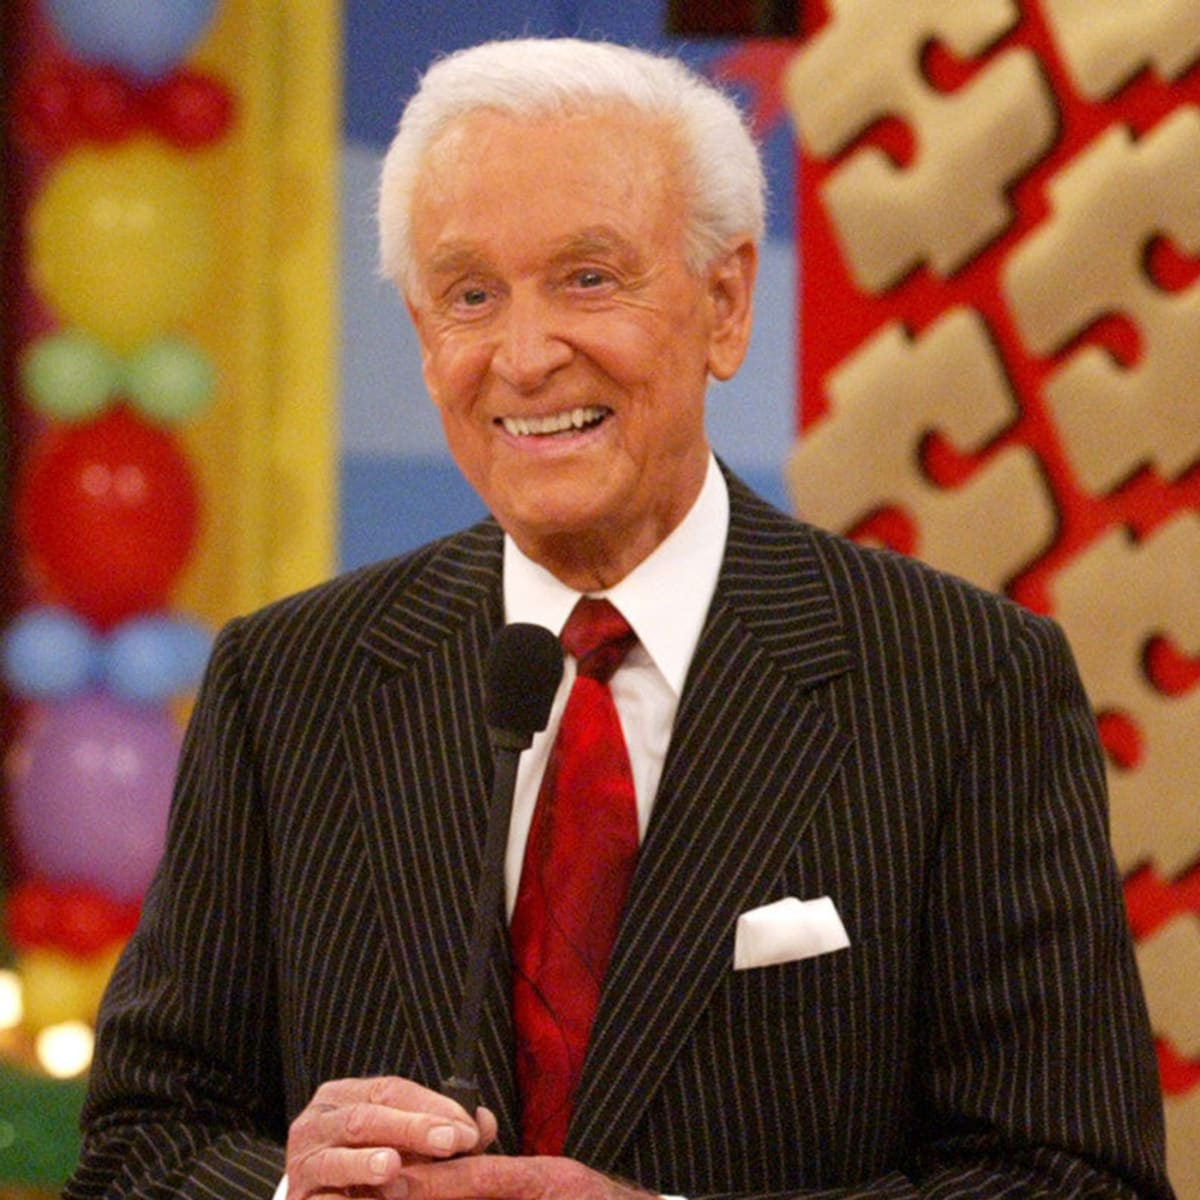 Bob barker place to have sex